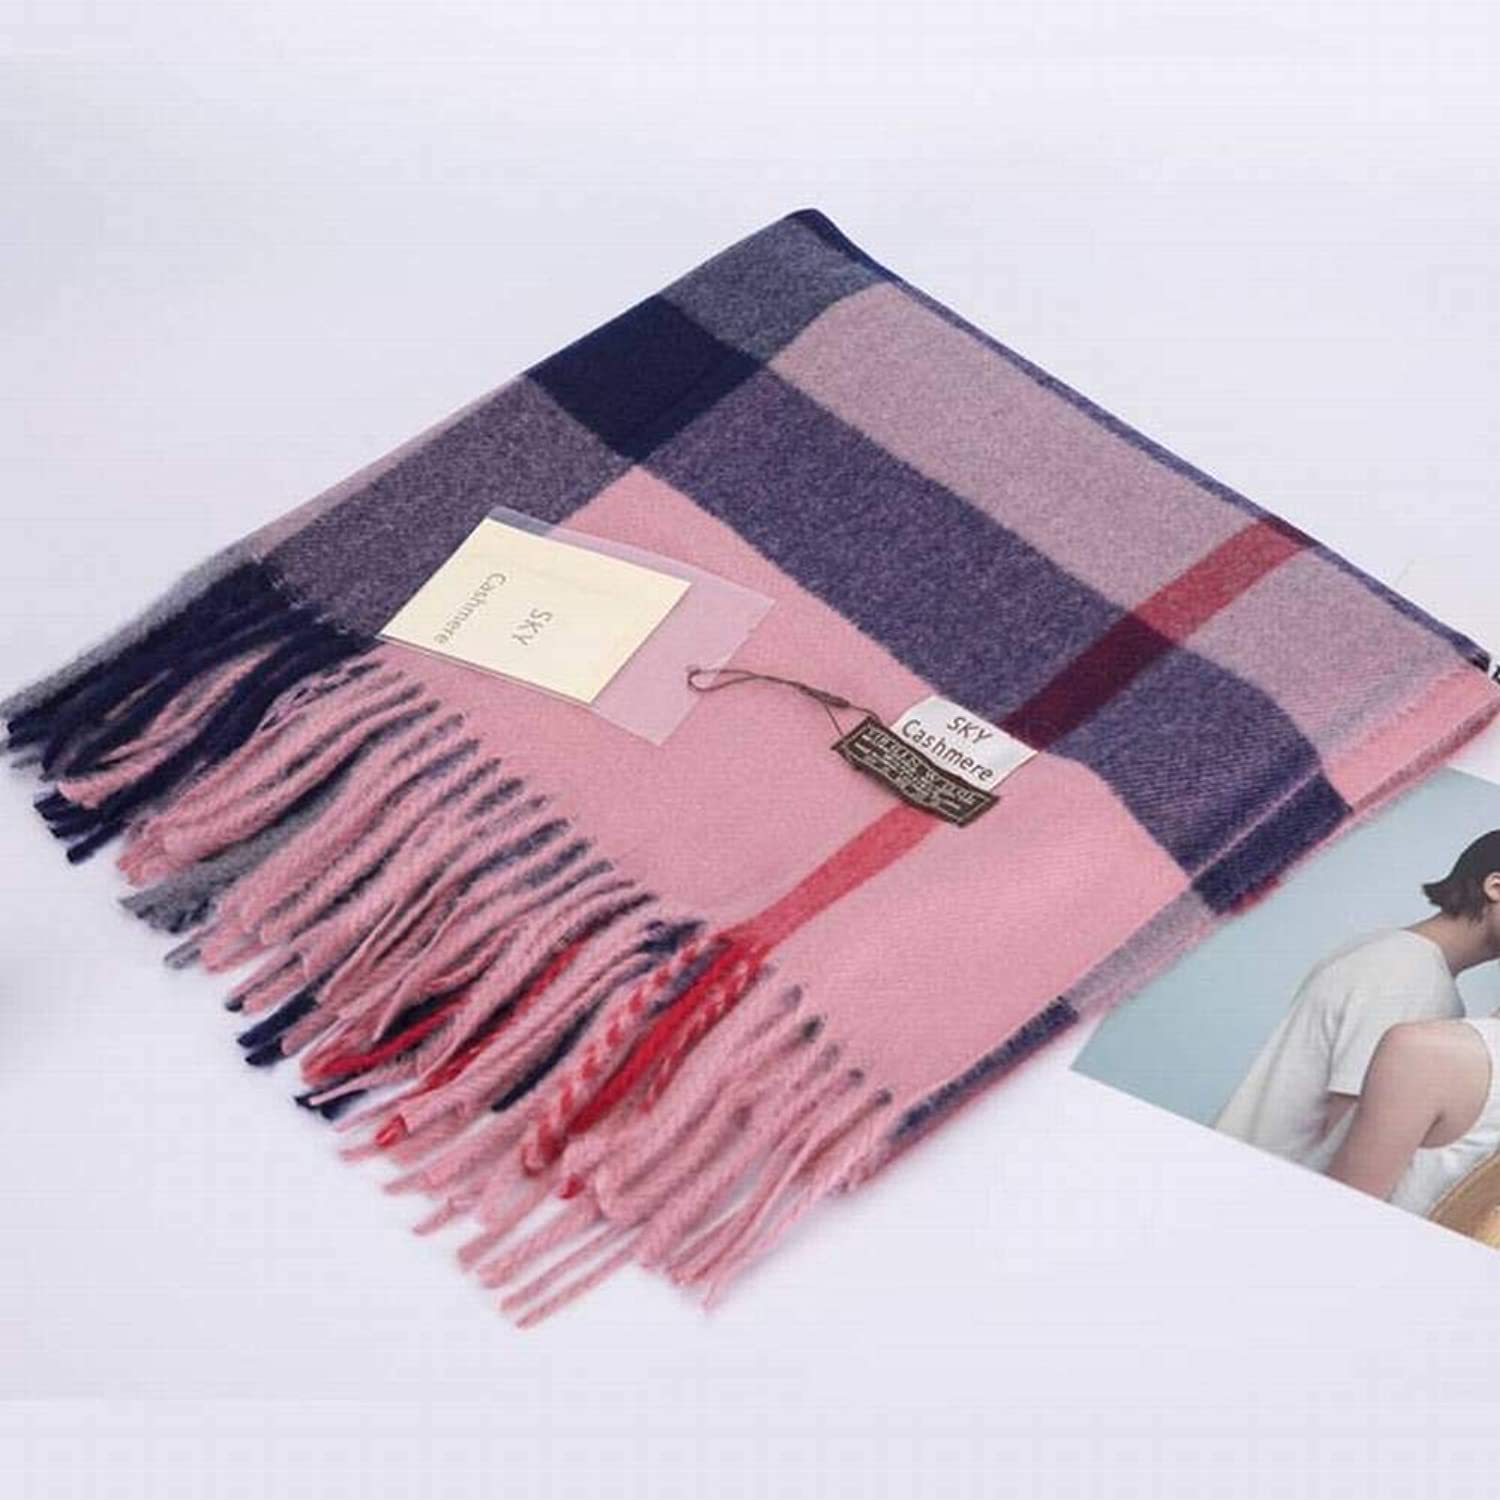 WJL Sweet Tassel Wool Men Warm Plaid Long Autumn and Winter Outdoor MultiFunctional Fgreyion Trend Wild Warm Shawl Scarf Gift